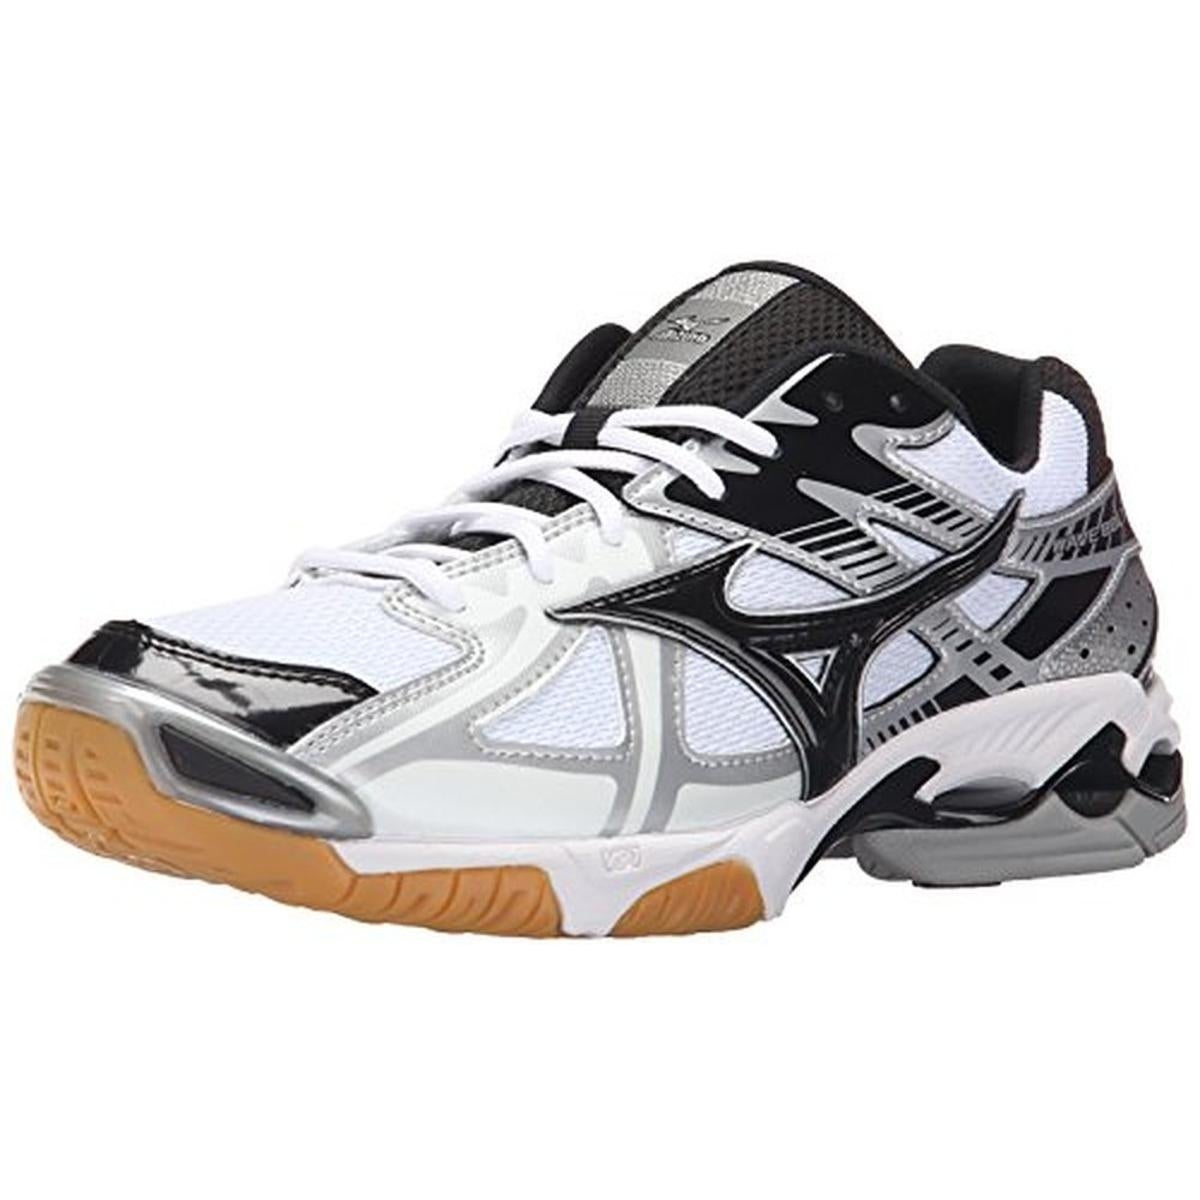 Shop Mizuno Mens Wave Bolt 4 Volleyball Shoes Mesh Lightweight - 17 medium  (d) - Free Shipping On Orders Over  45 - Overstock.com - 22670963 2ba56e9aa0b